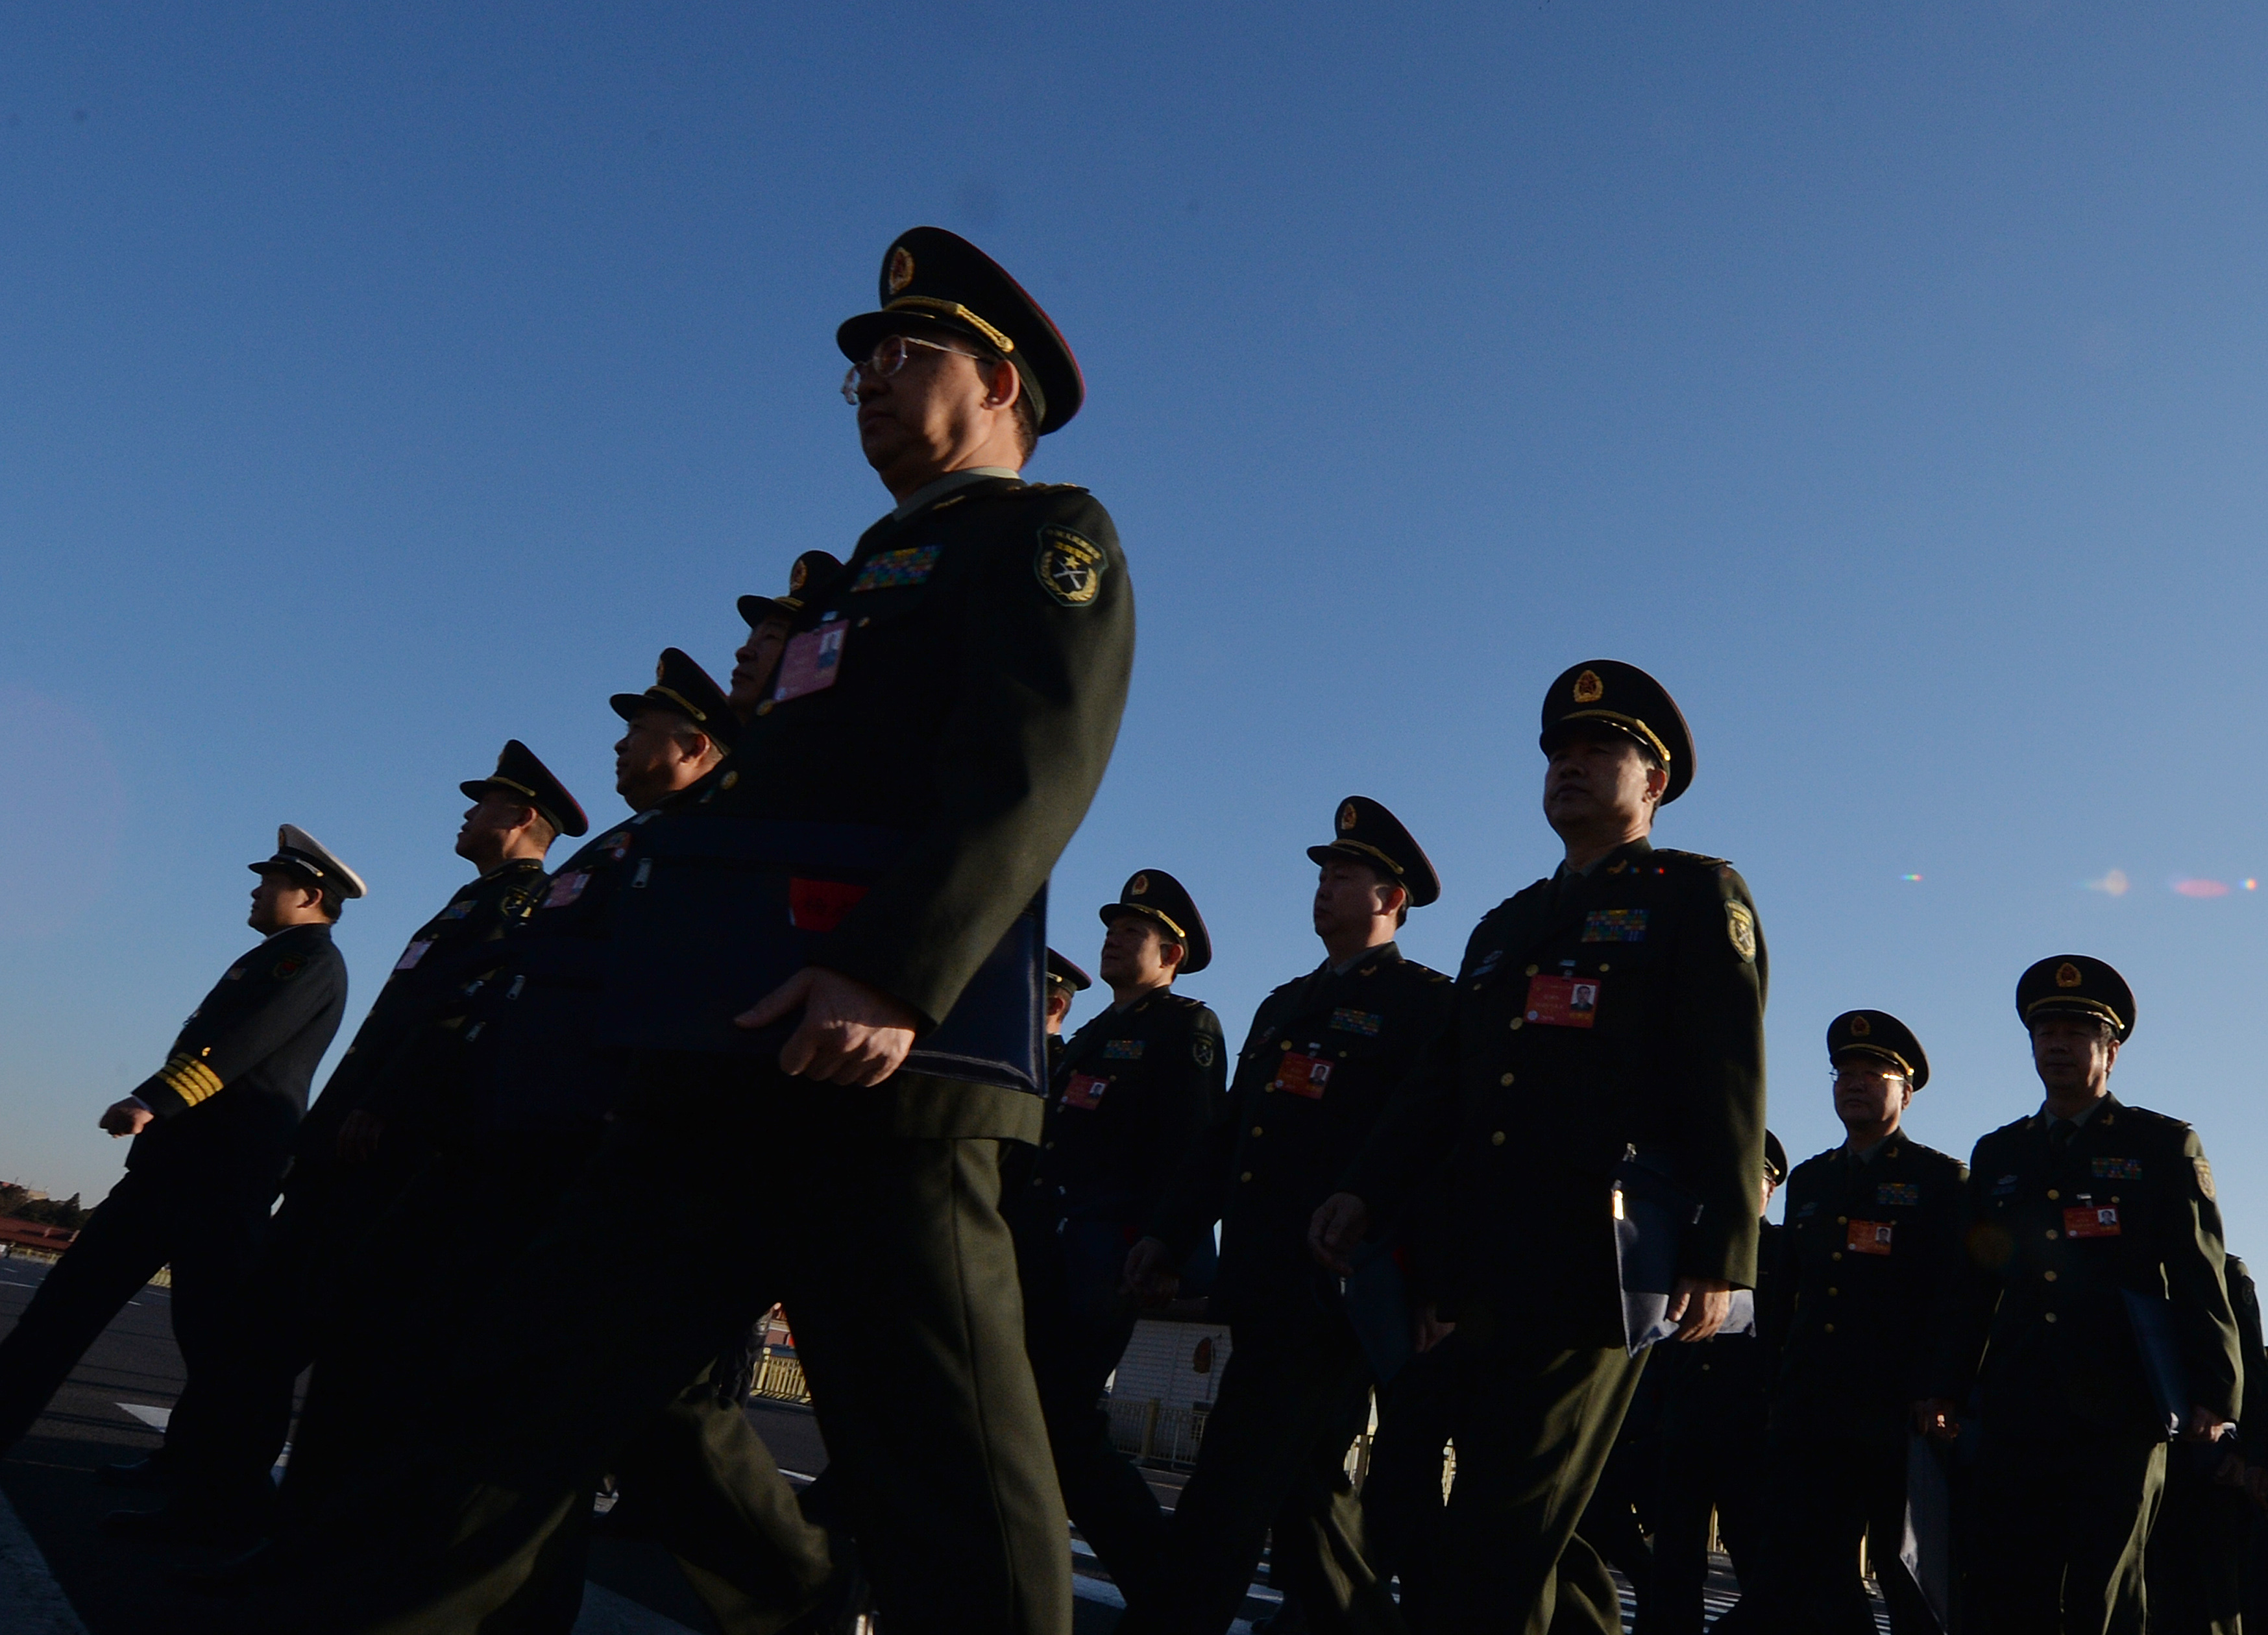 China's New National Security Law Under Attack